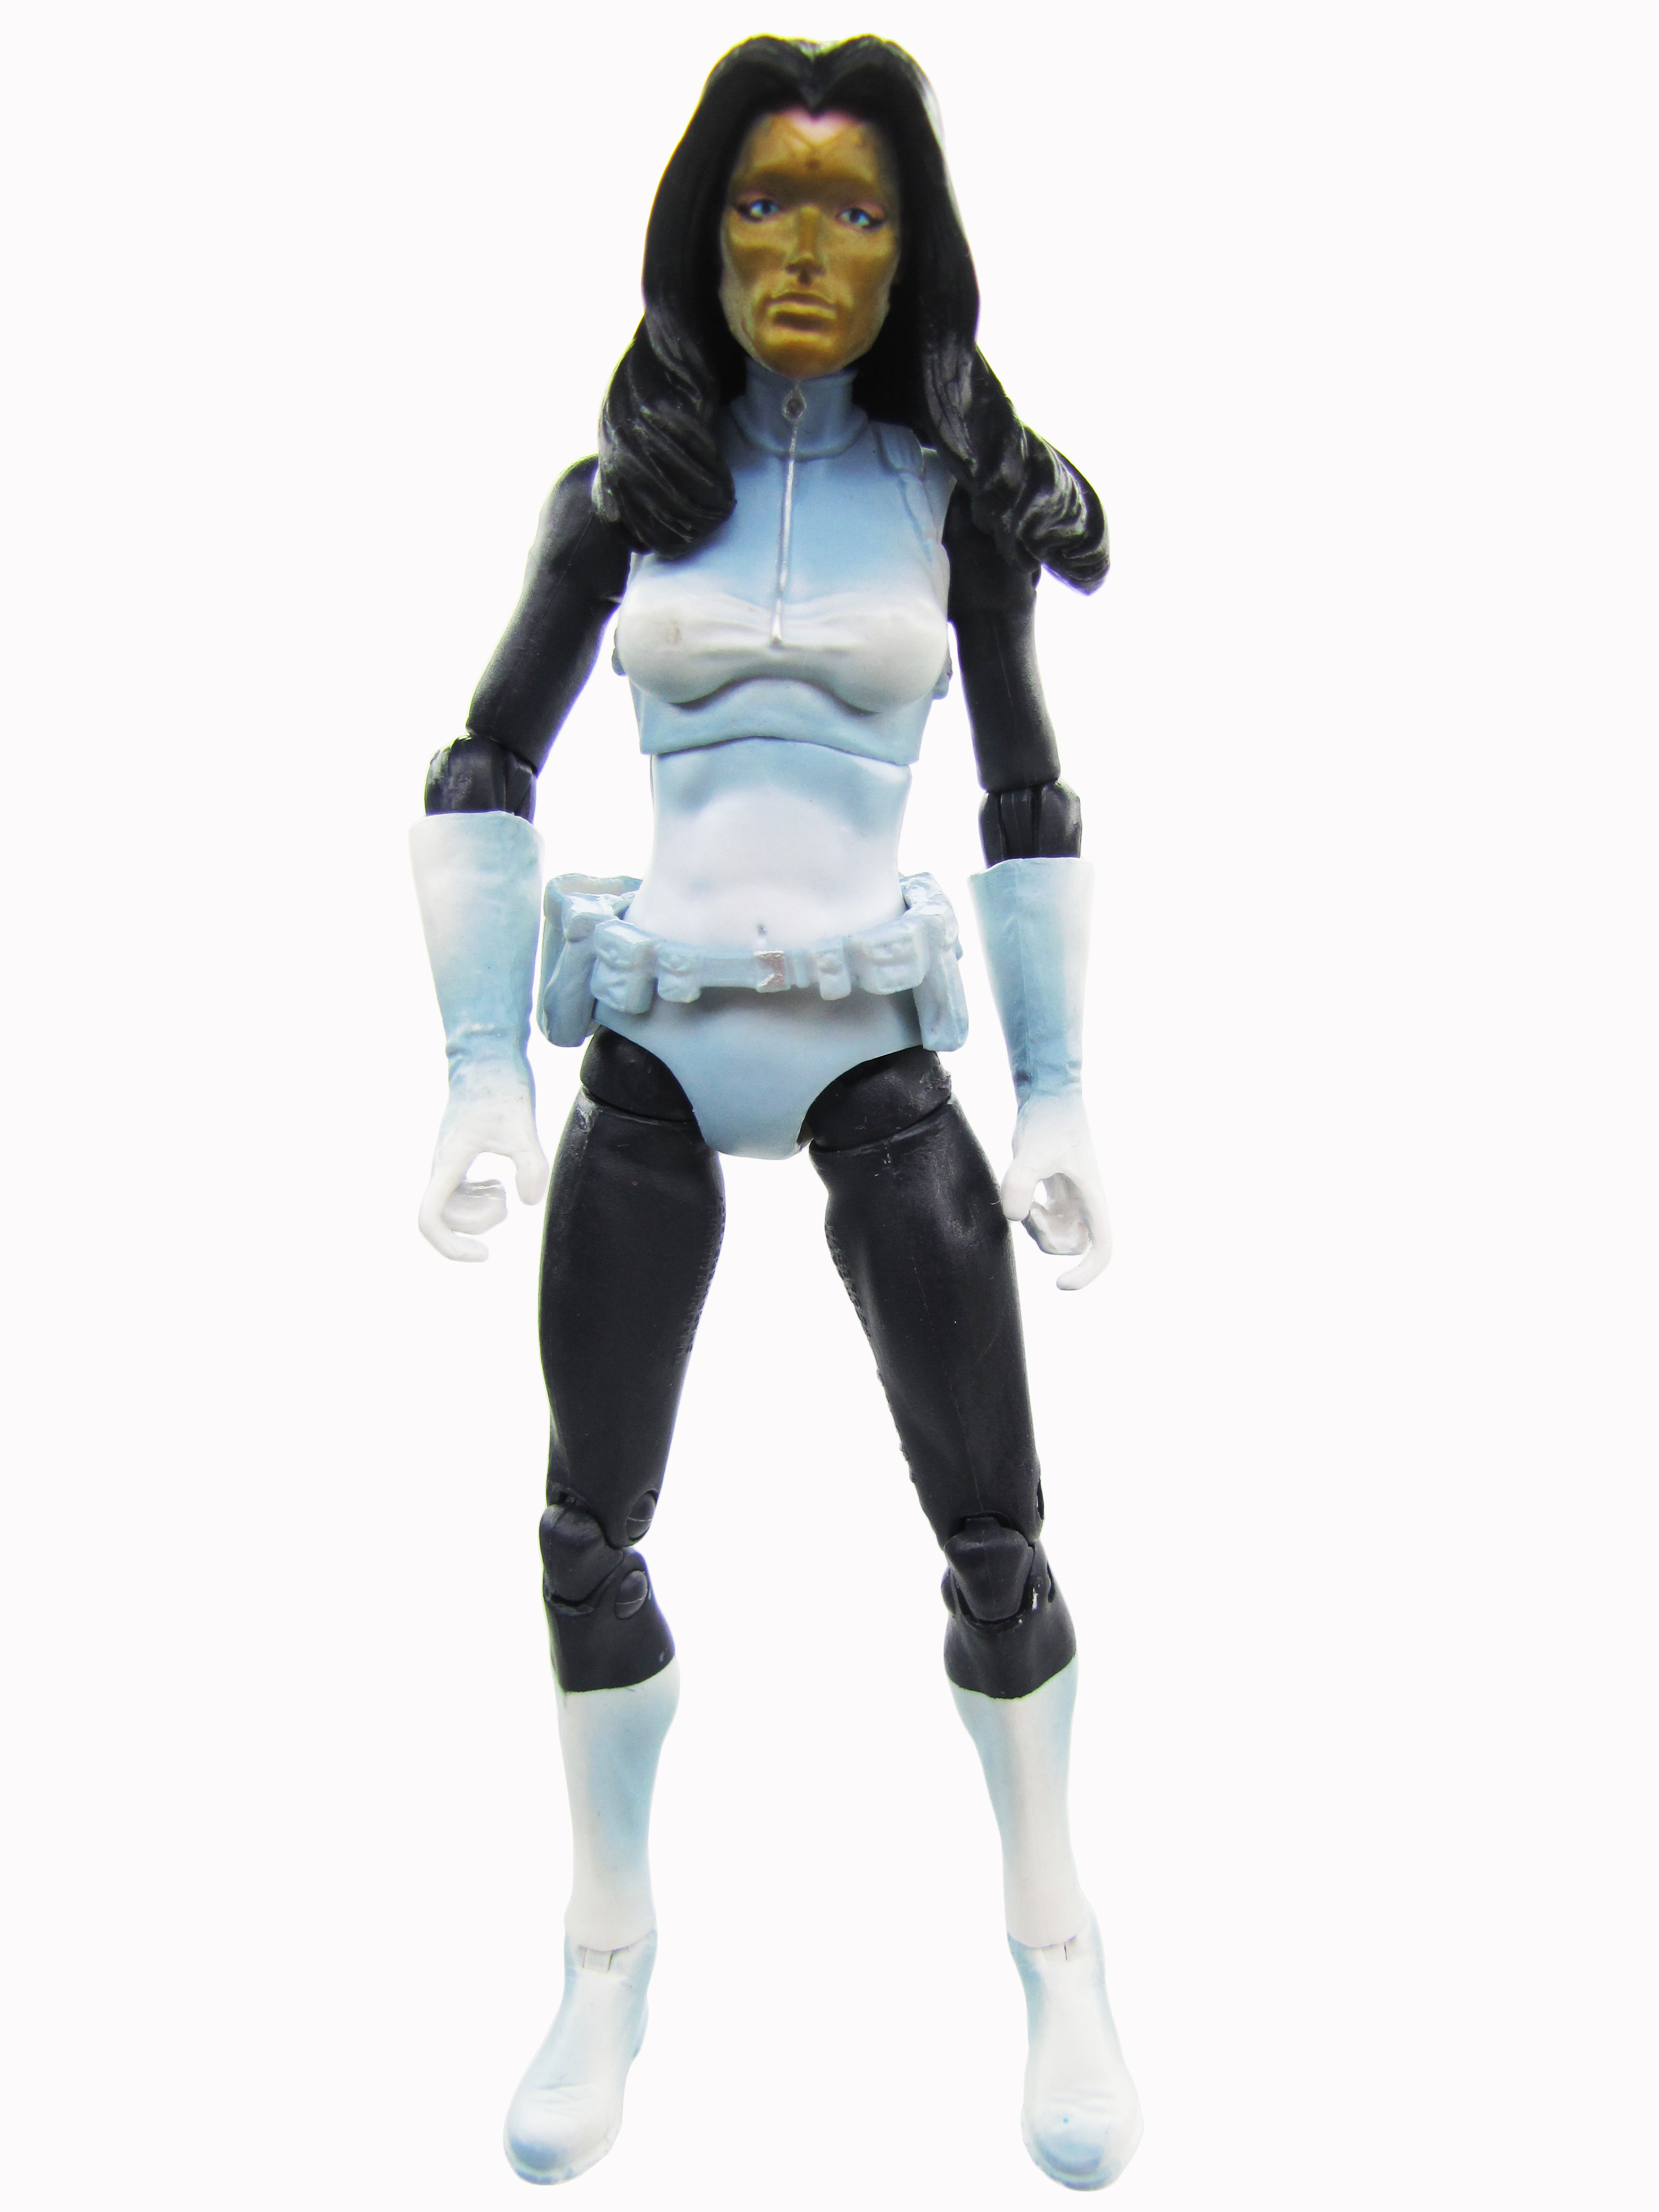 2012 Marvel Legends MARVEL'S MADAMES MADAME MASQUE Near Mint Condition